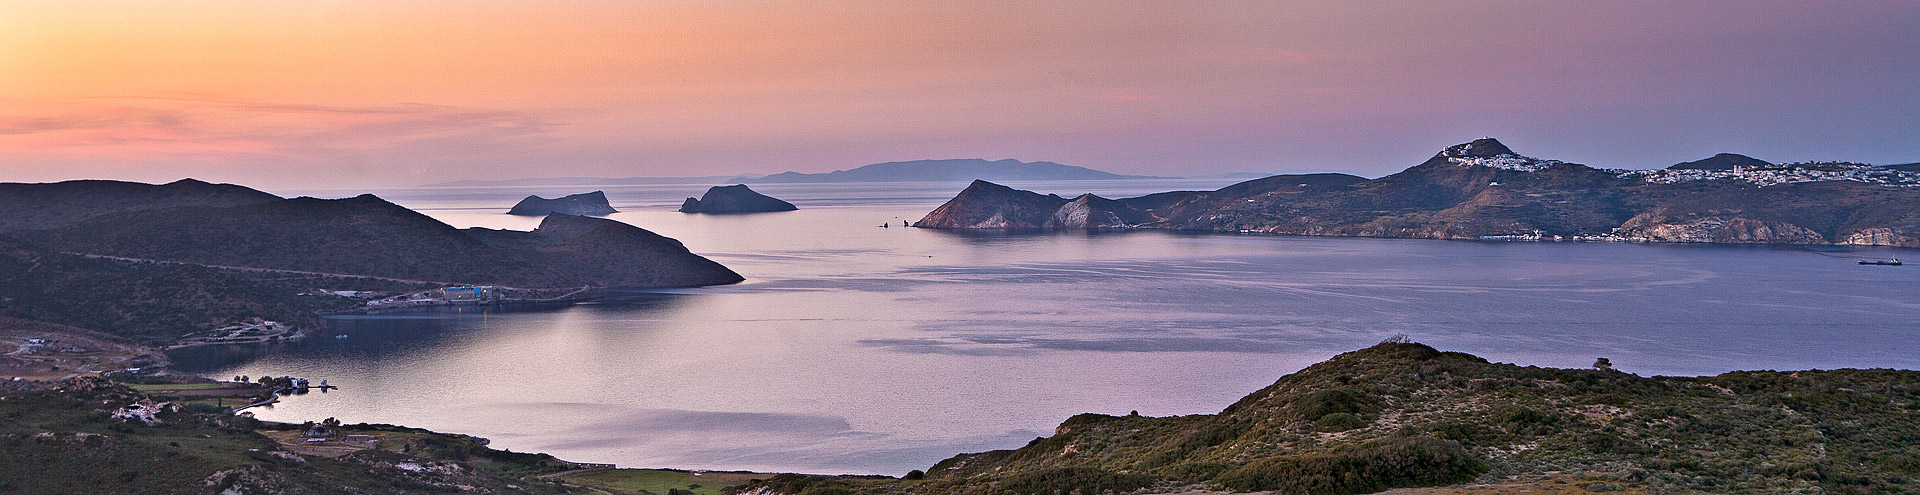 The bay of Milos island